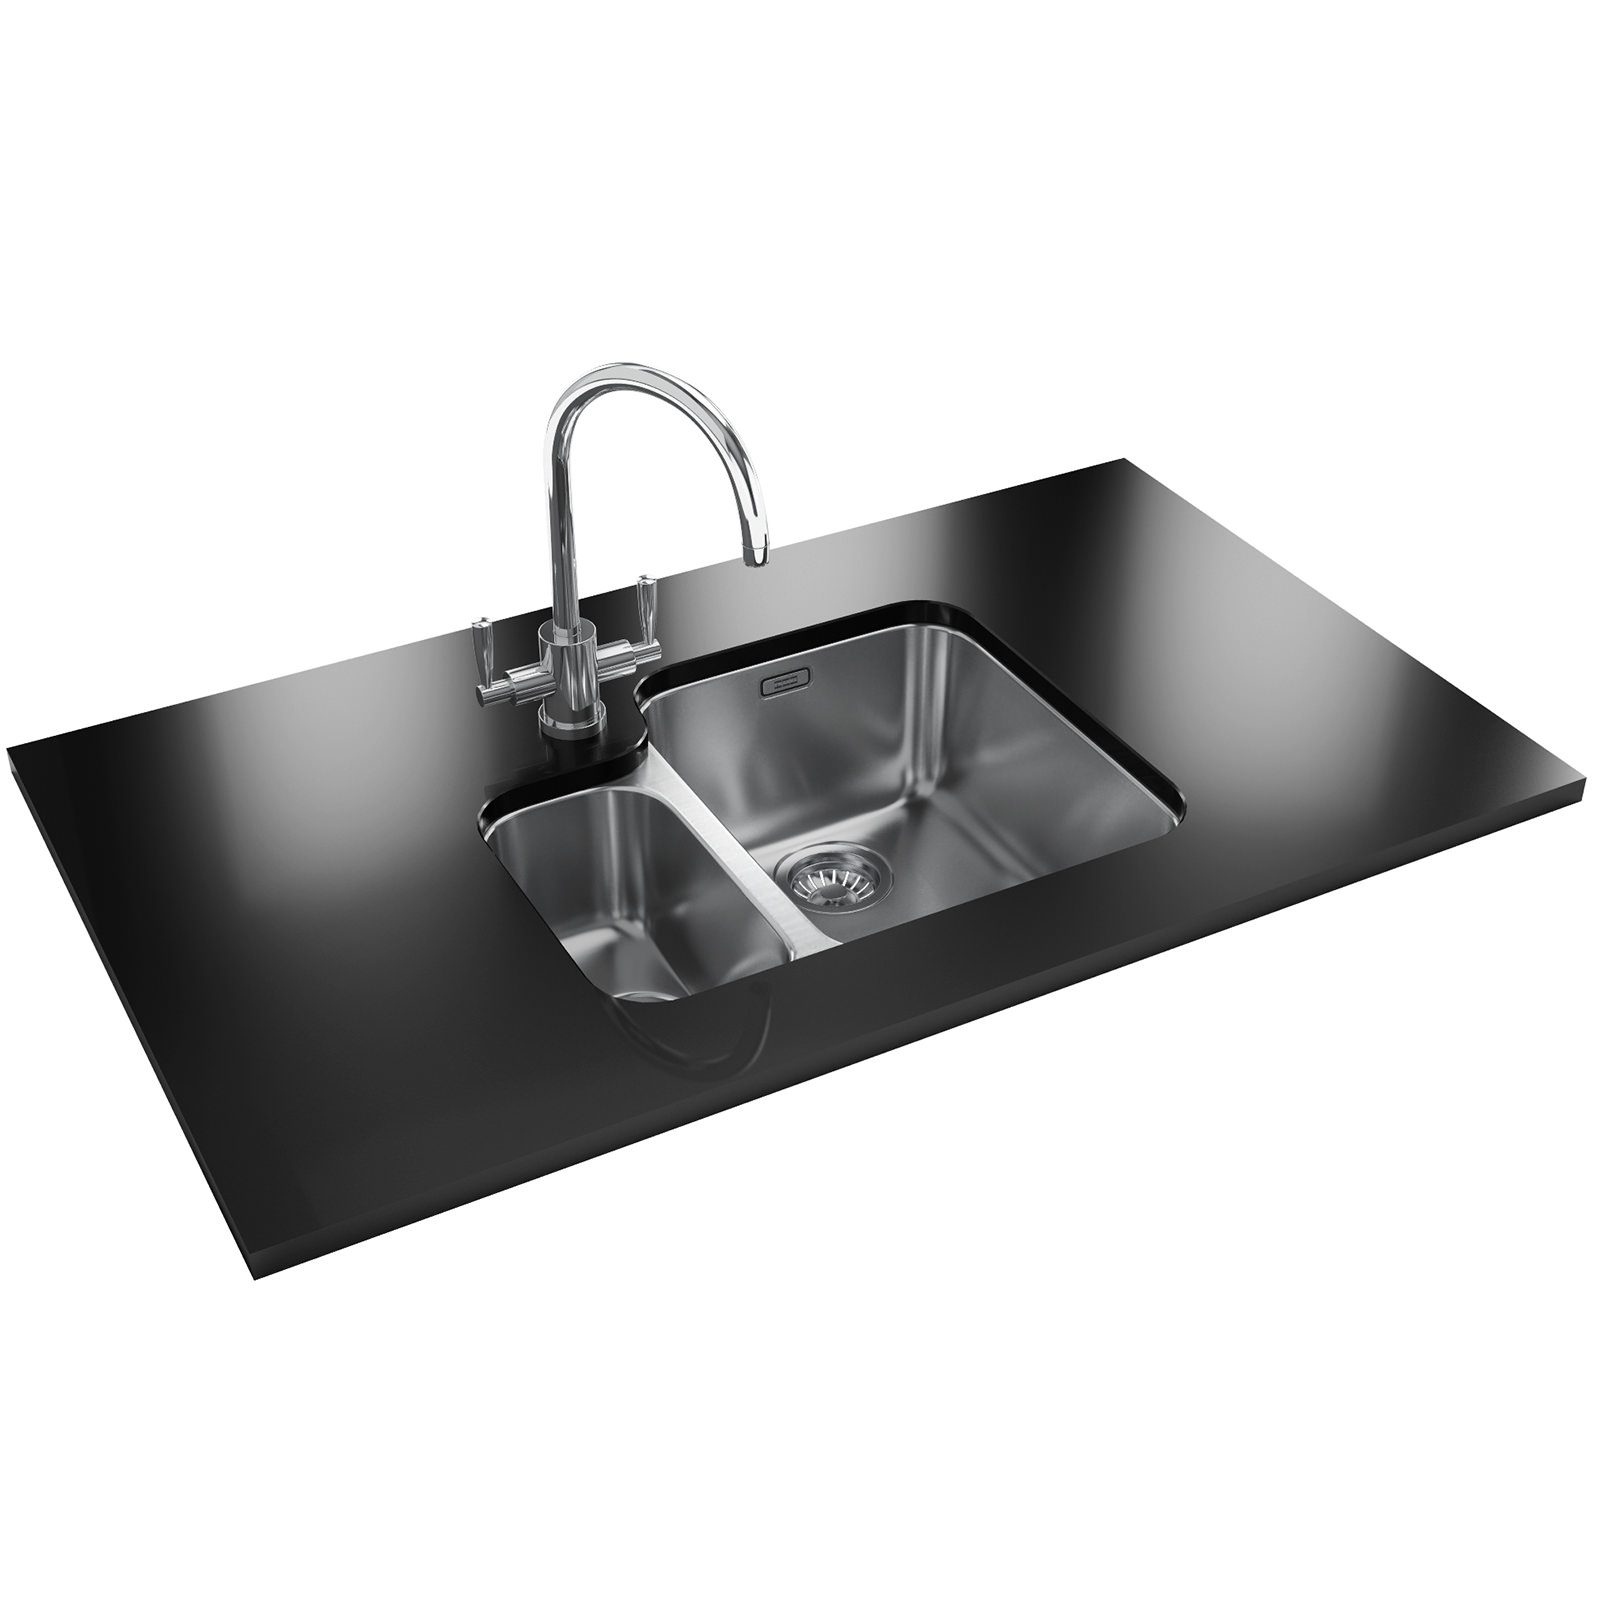 Franke Laundry : Franke Ariane ARX 160 Stainless Steel 1.5 Bowl Undermount Sink 122 ...